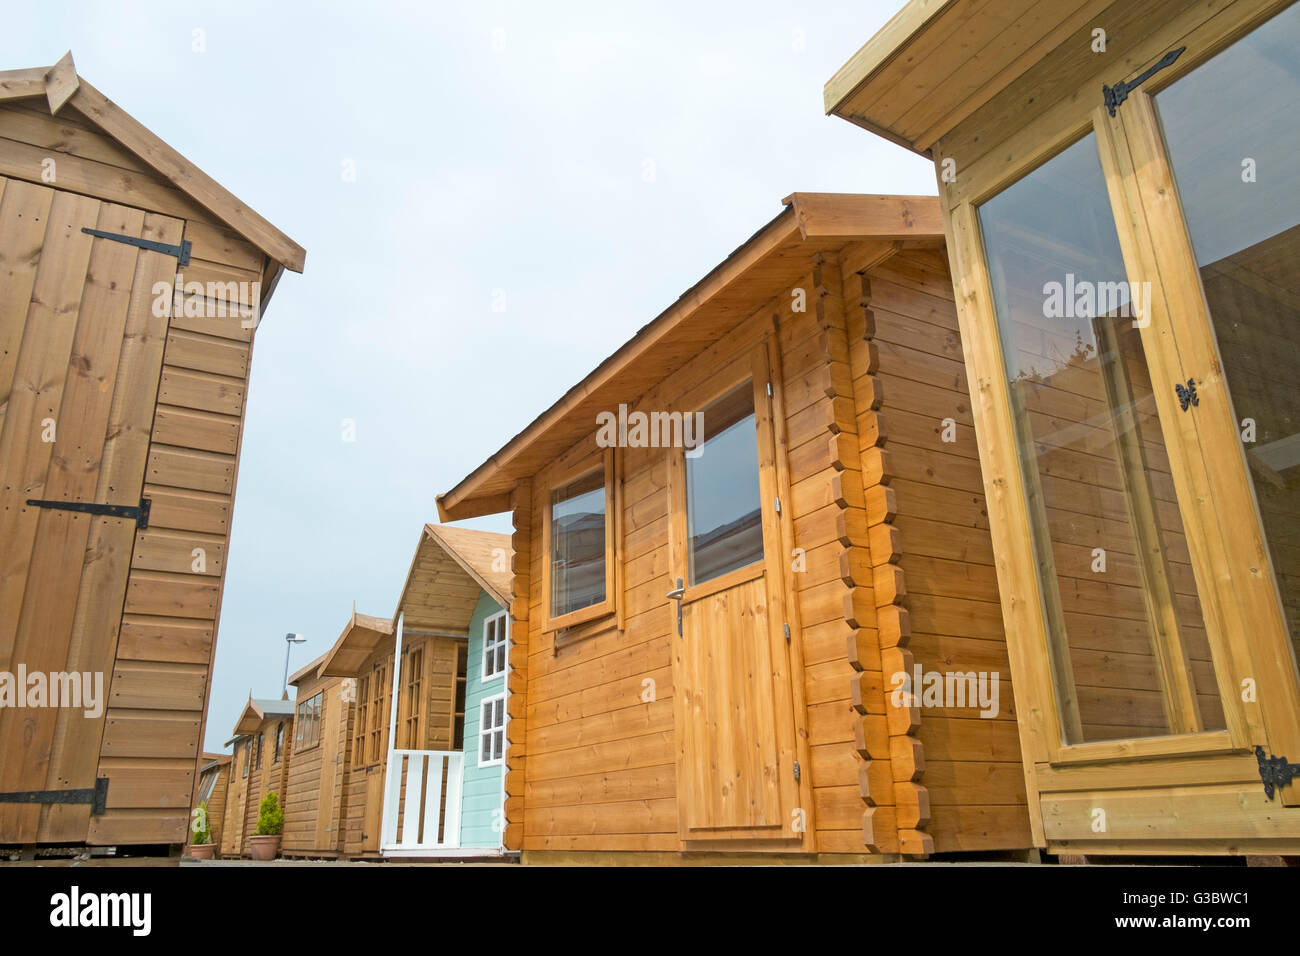 Tanalised timber workshop, home office or wooden summer houses, of log lap construction, storage sheds built of - Stock Image